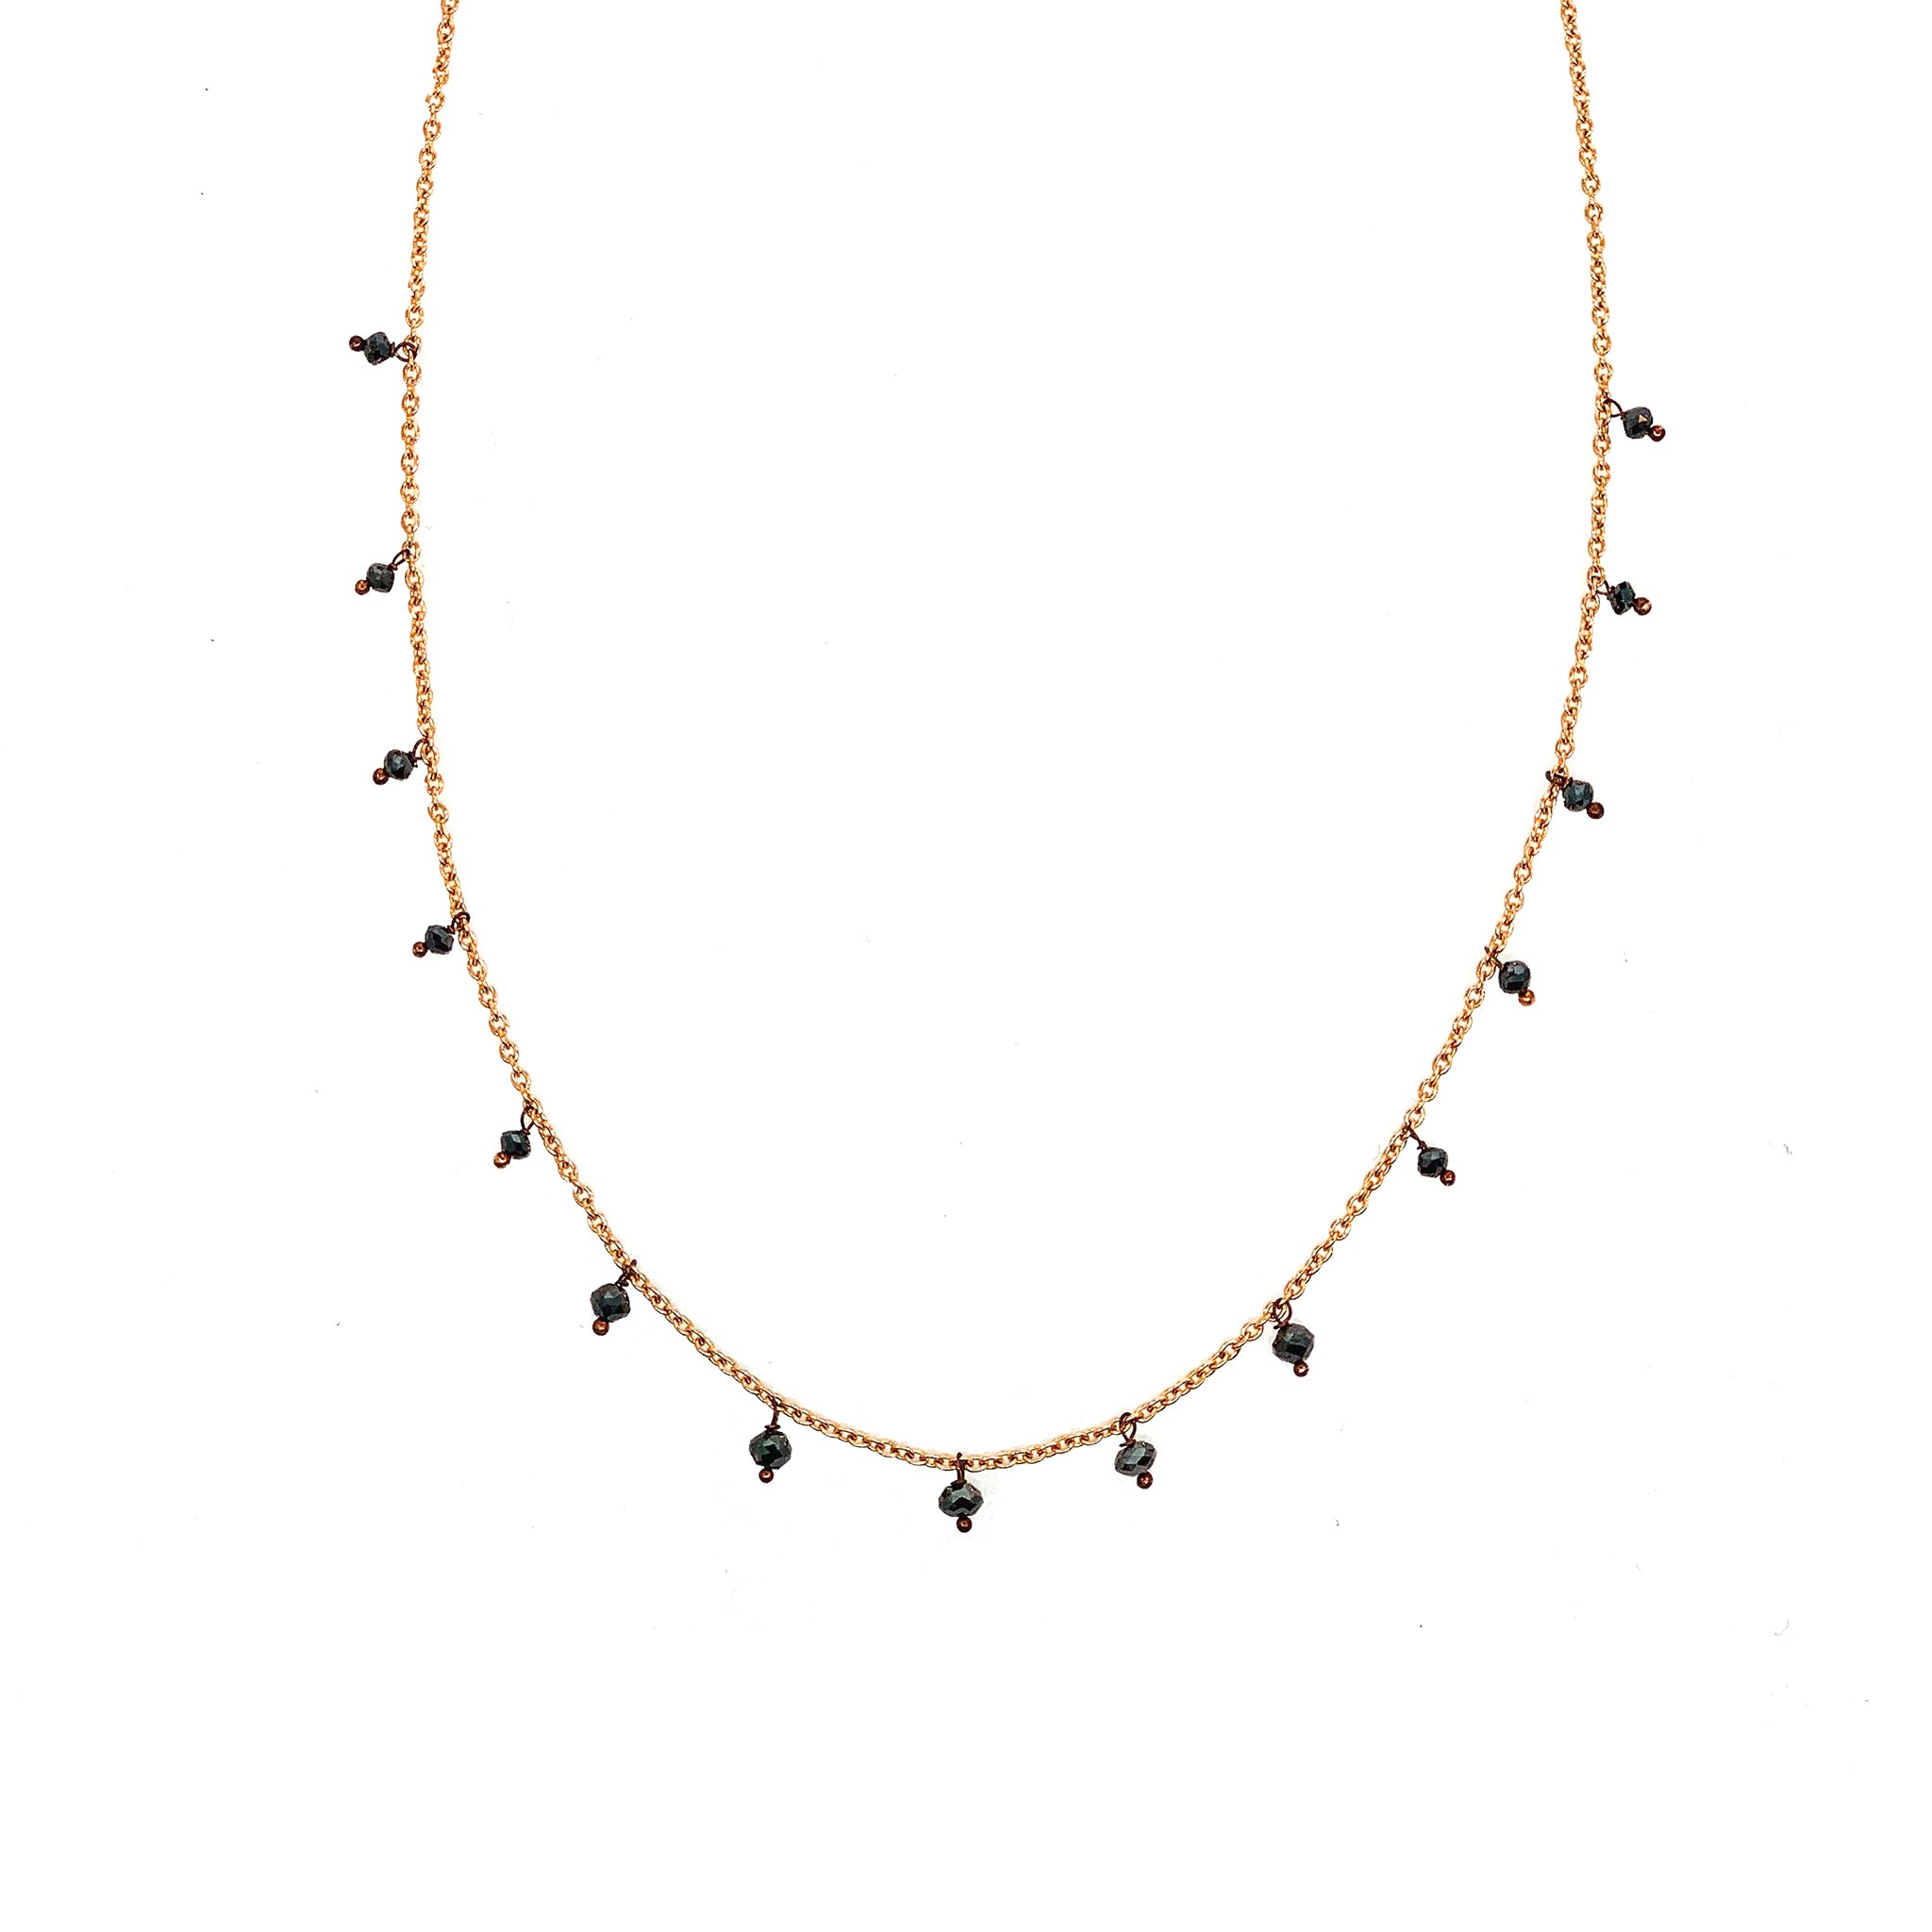 The Adeline Necklace